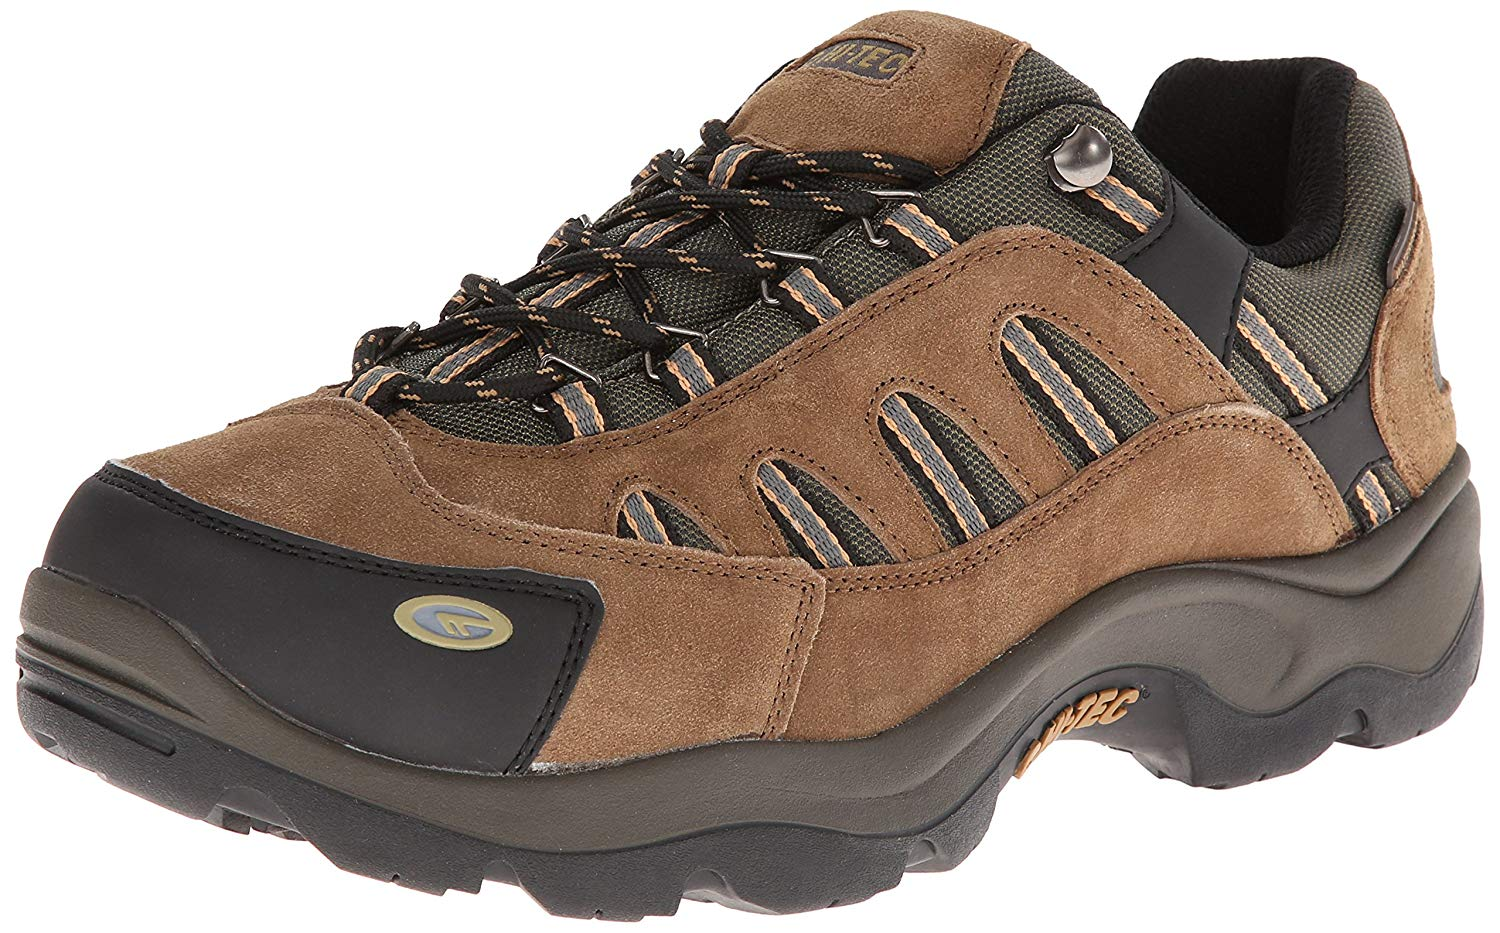 0895b433e28b43 Hi-Tec Bandera Low WP Hiking Boots - Men's with Free S&H — CampSaver